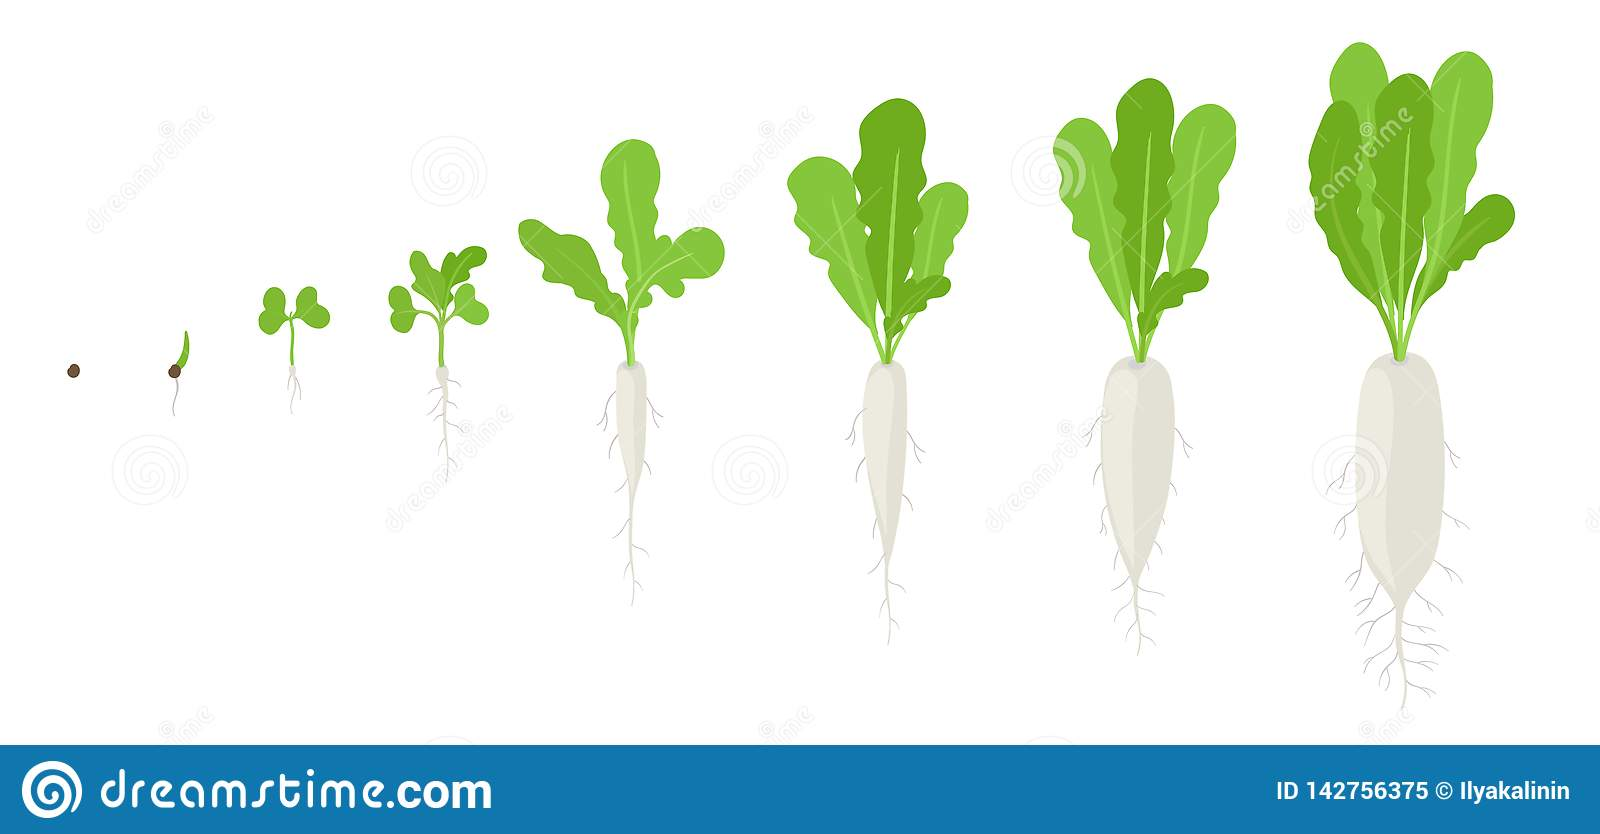 Daikon Growth Stages Planting Of Long White Winter Radish